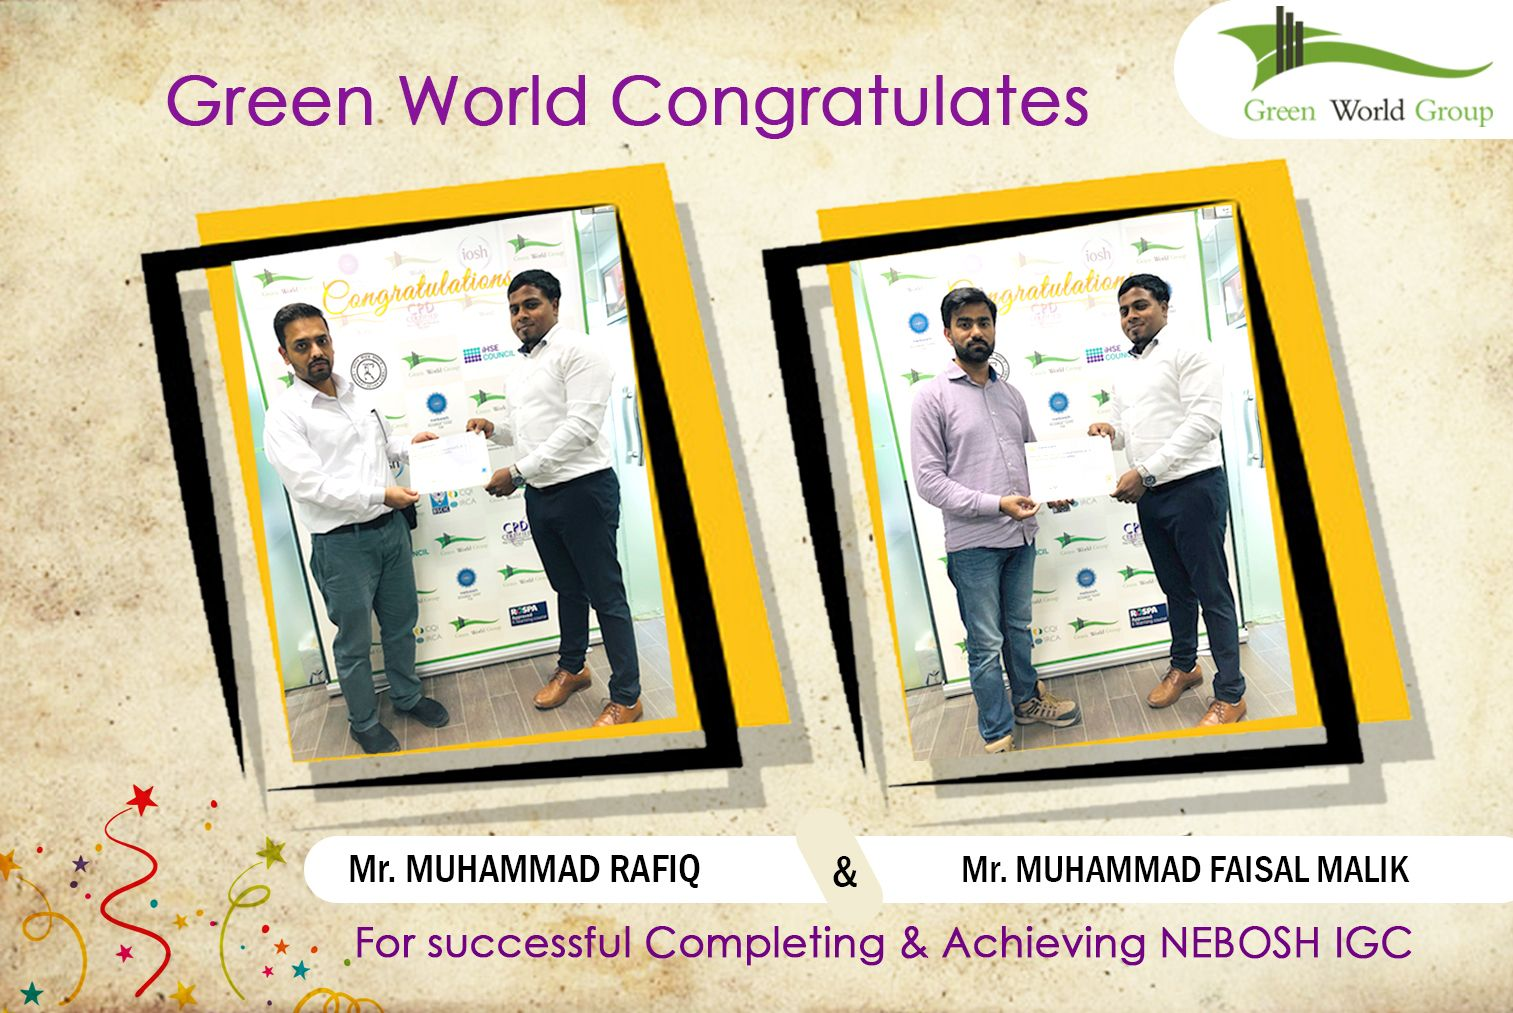 Green World Congratulates the students for successful